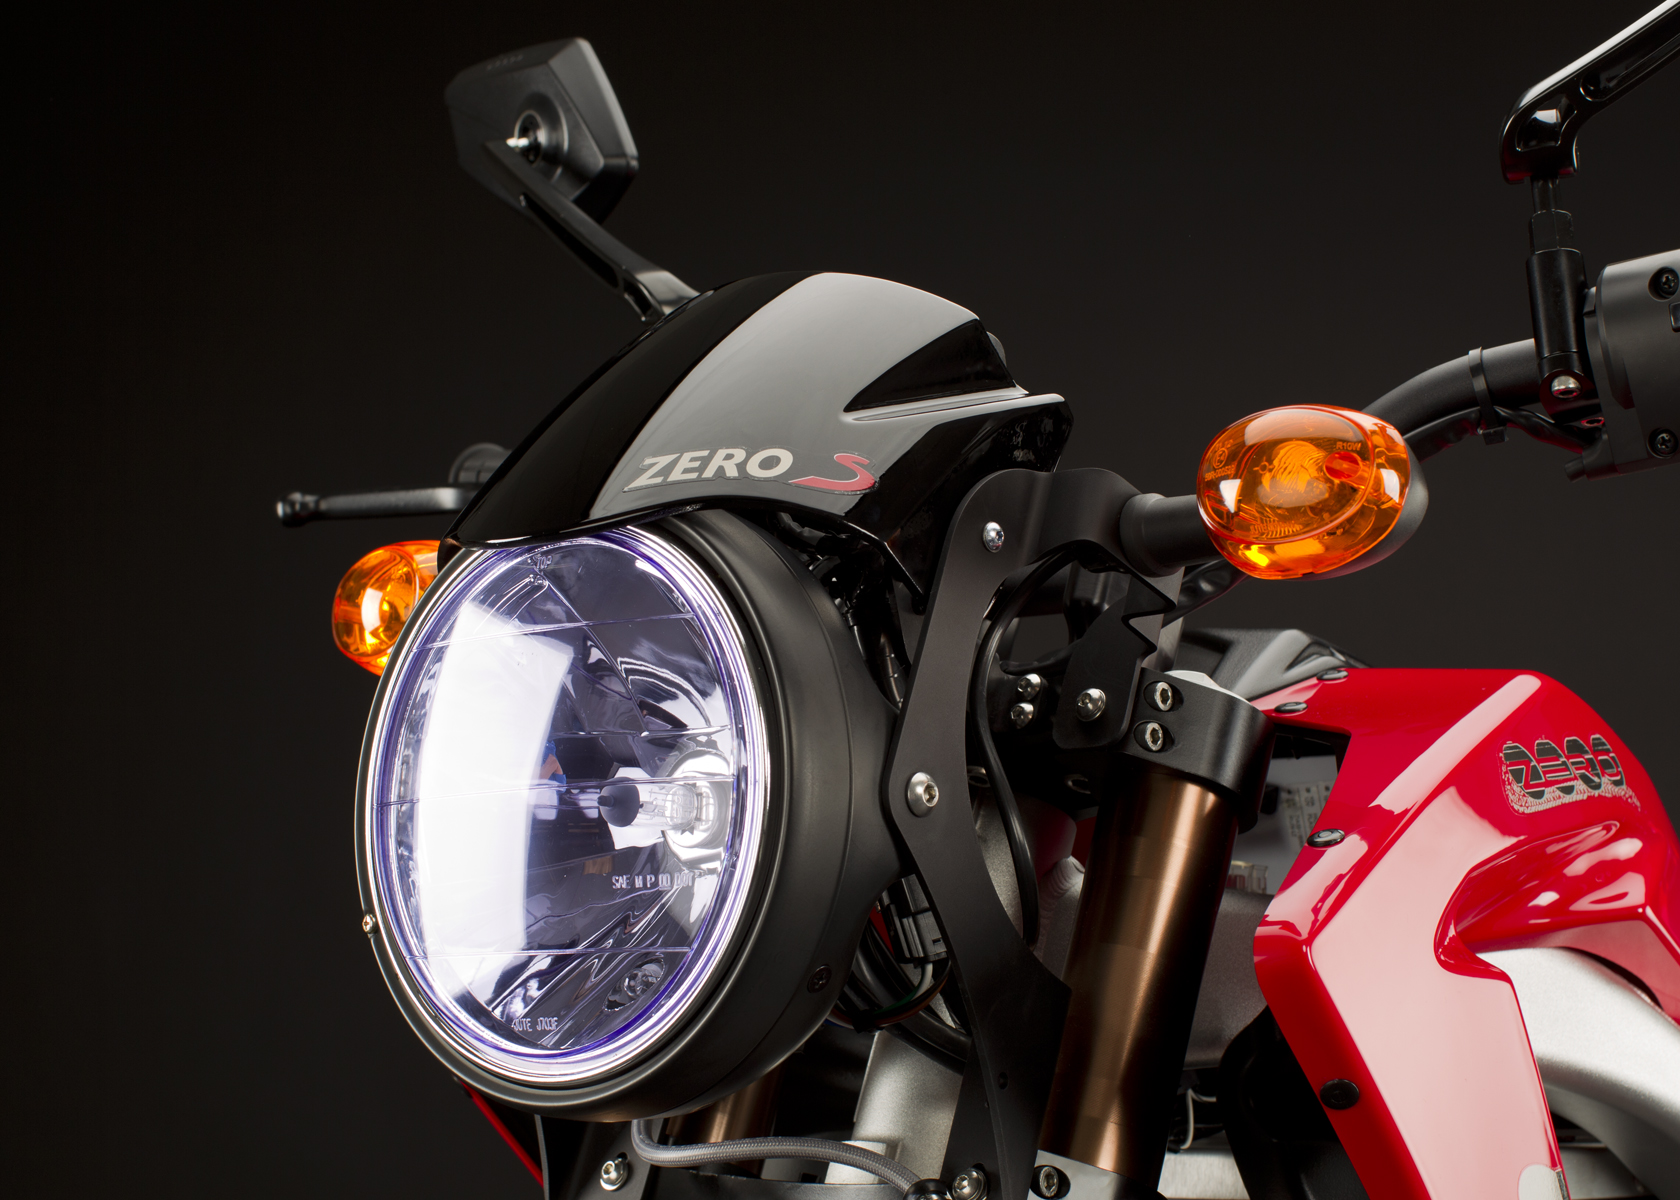 2011 Zero S Electric Motorcycle: Turn Signal